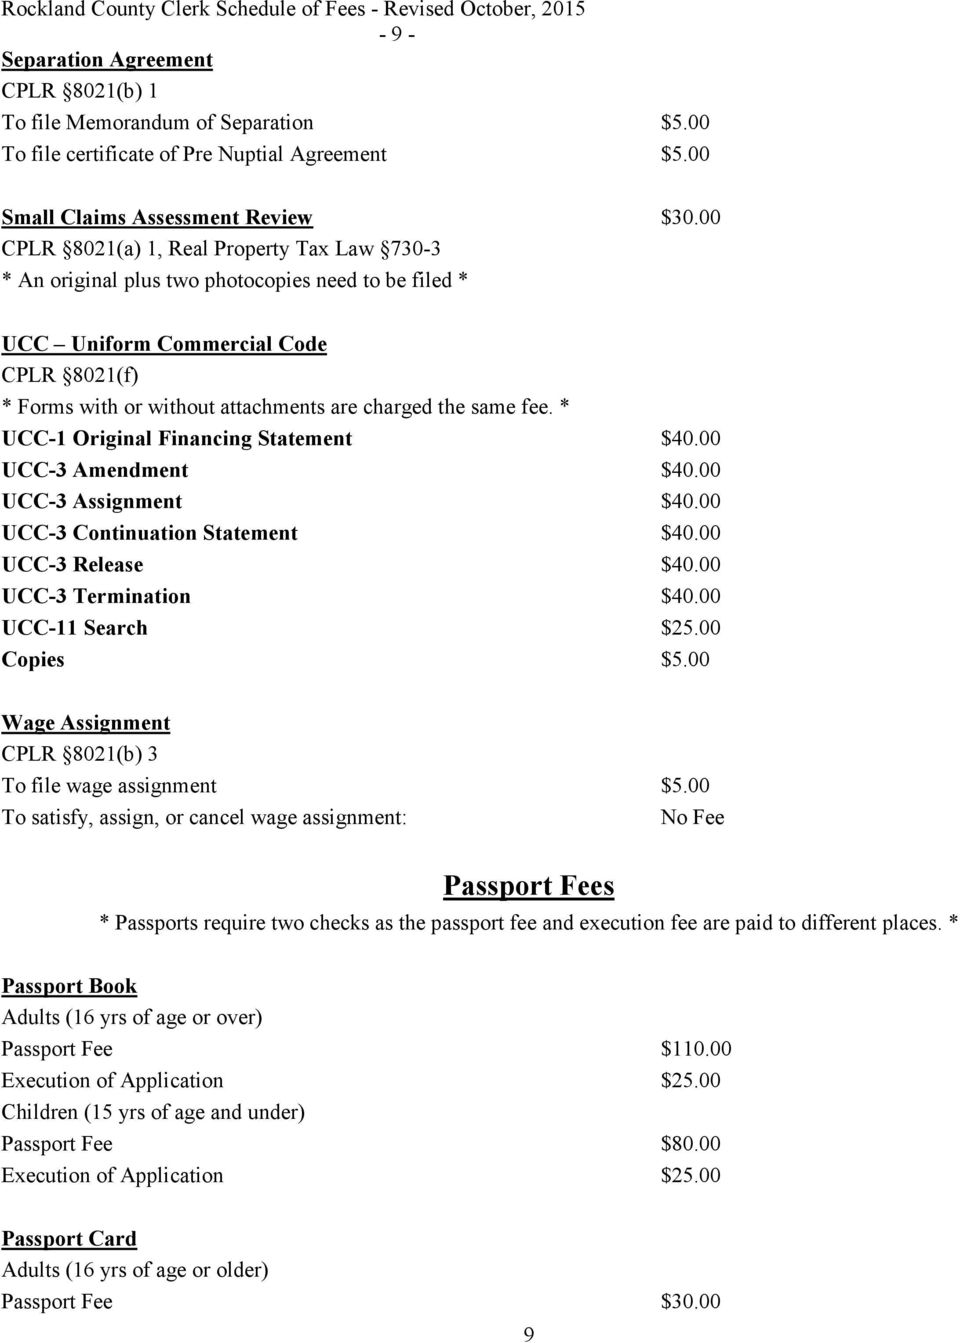 Rockland County Clerk s Office  Schedule of Fees PAUL